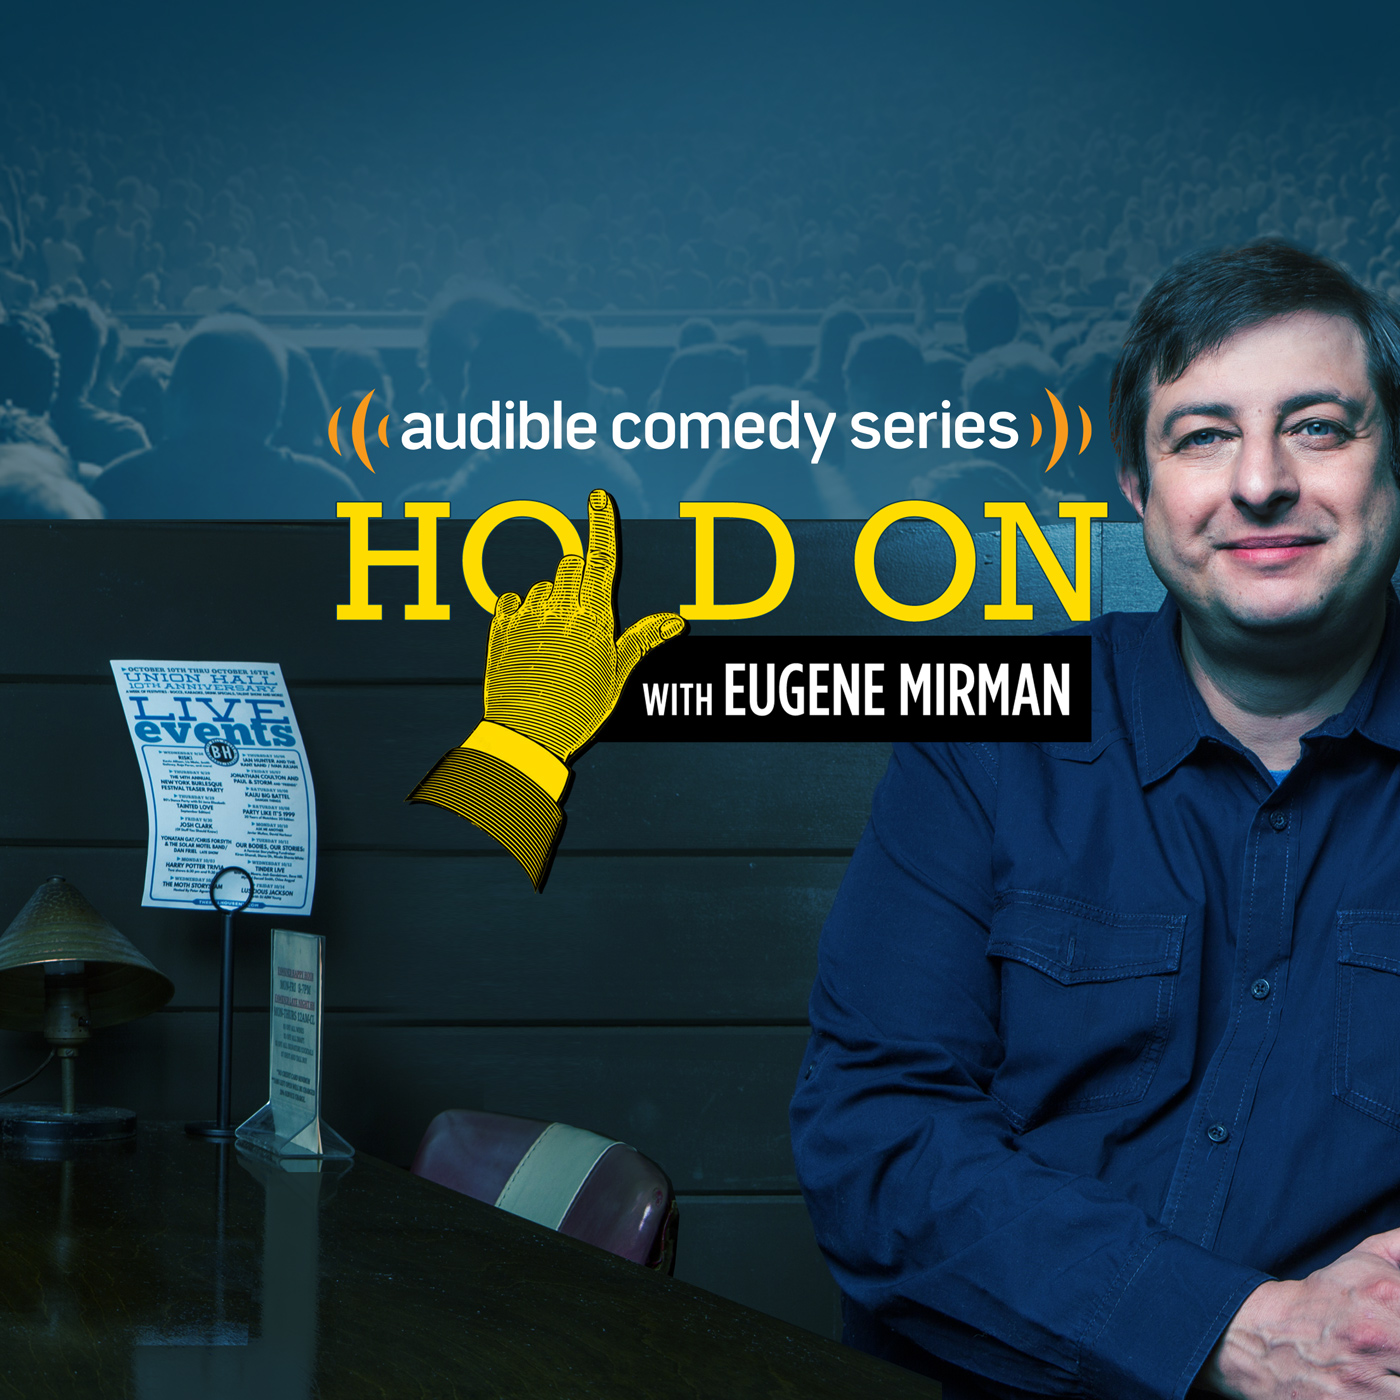 Hold On With Eugene Mirman By Audible On Apple Podcasts